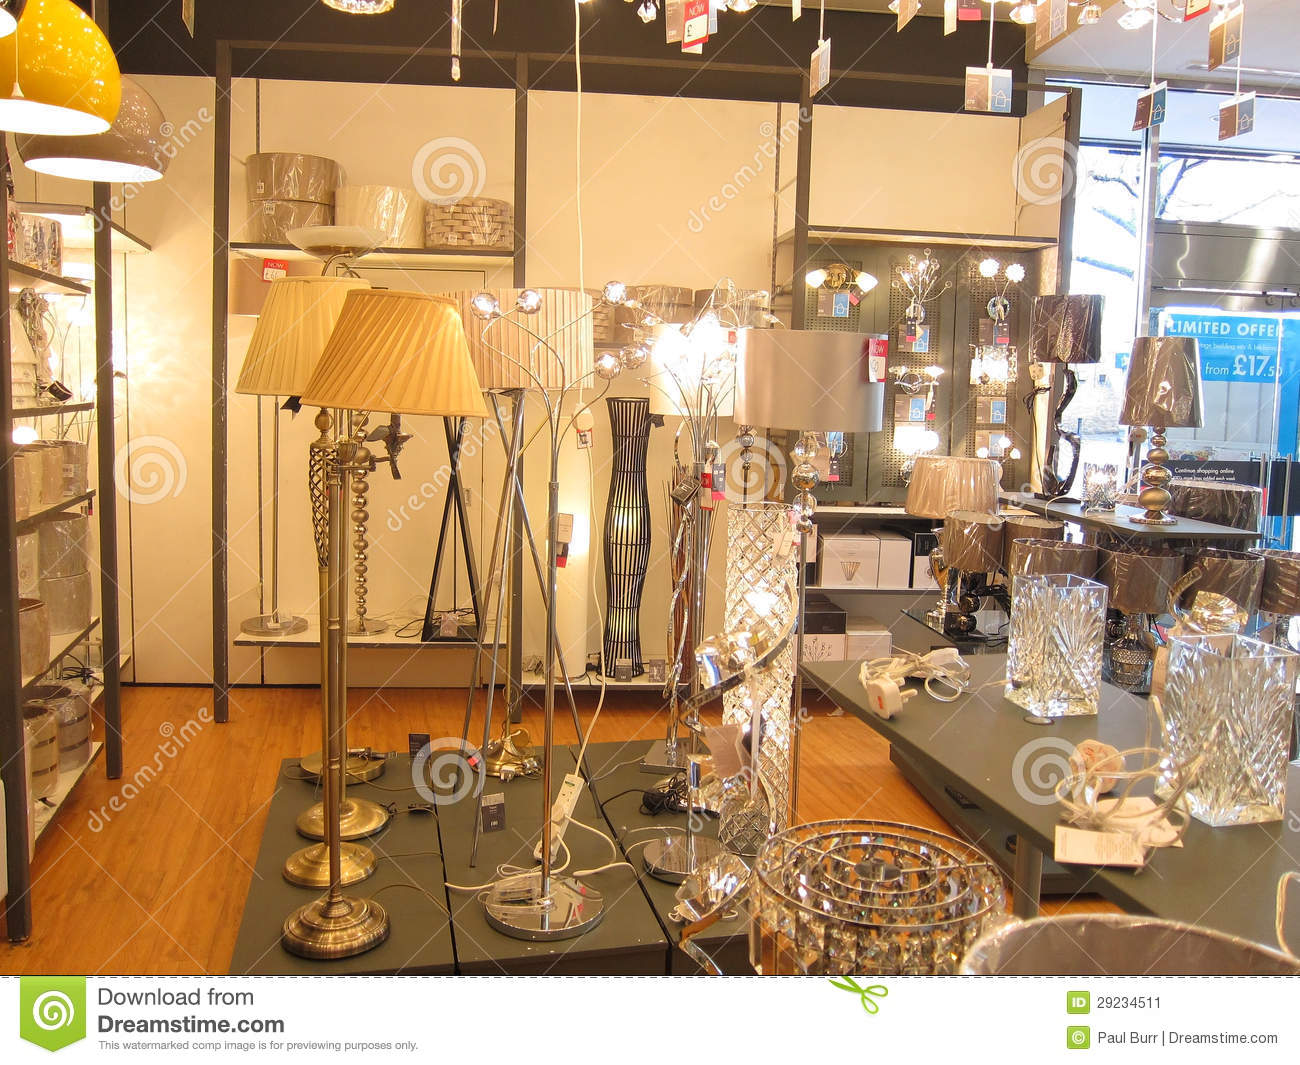 British Home Stores Lighting